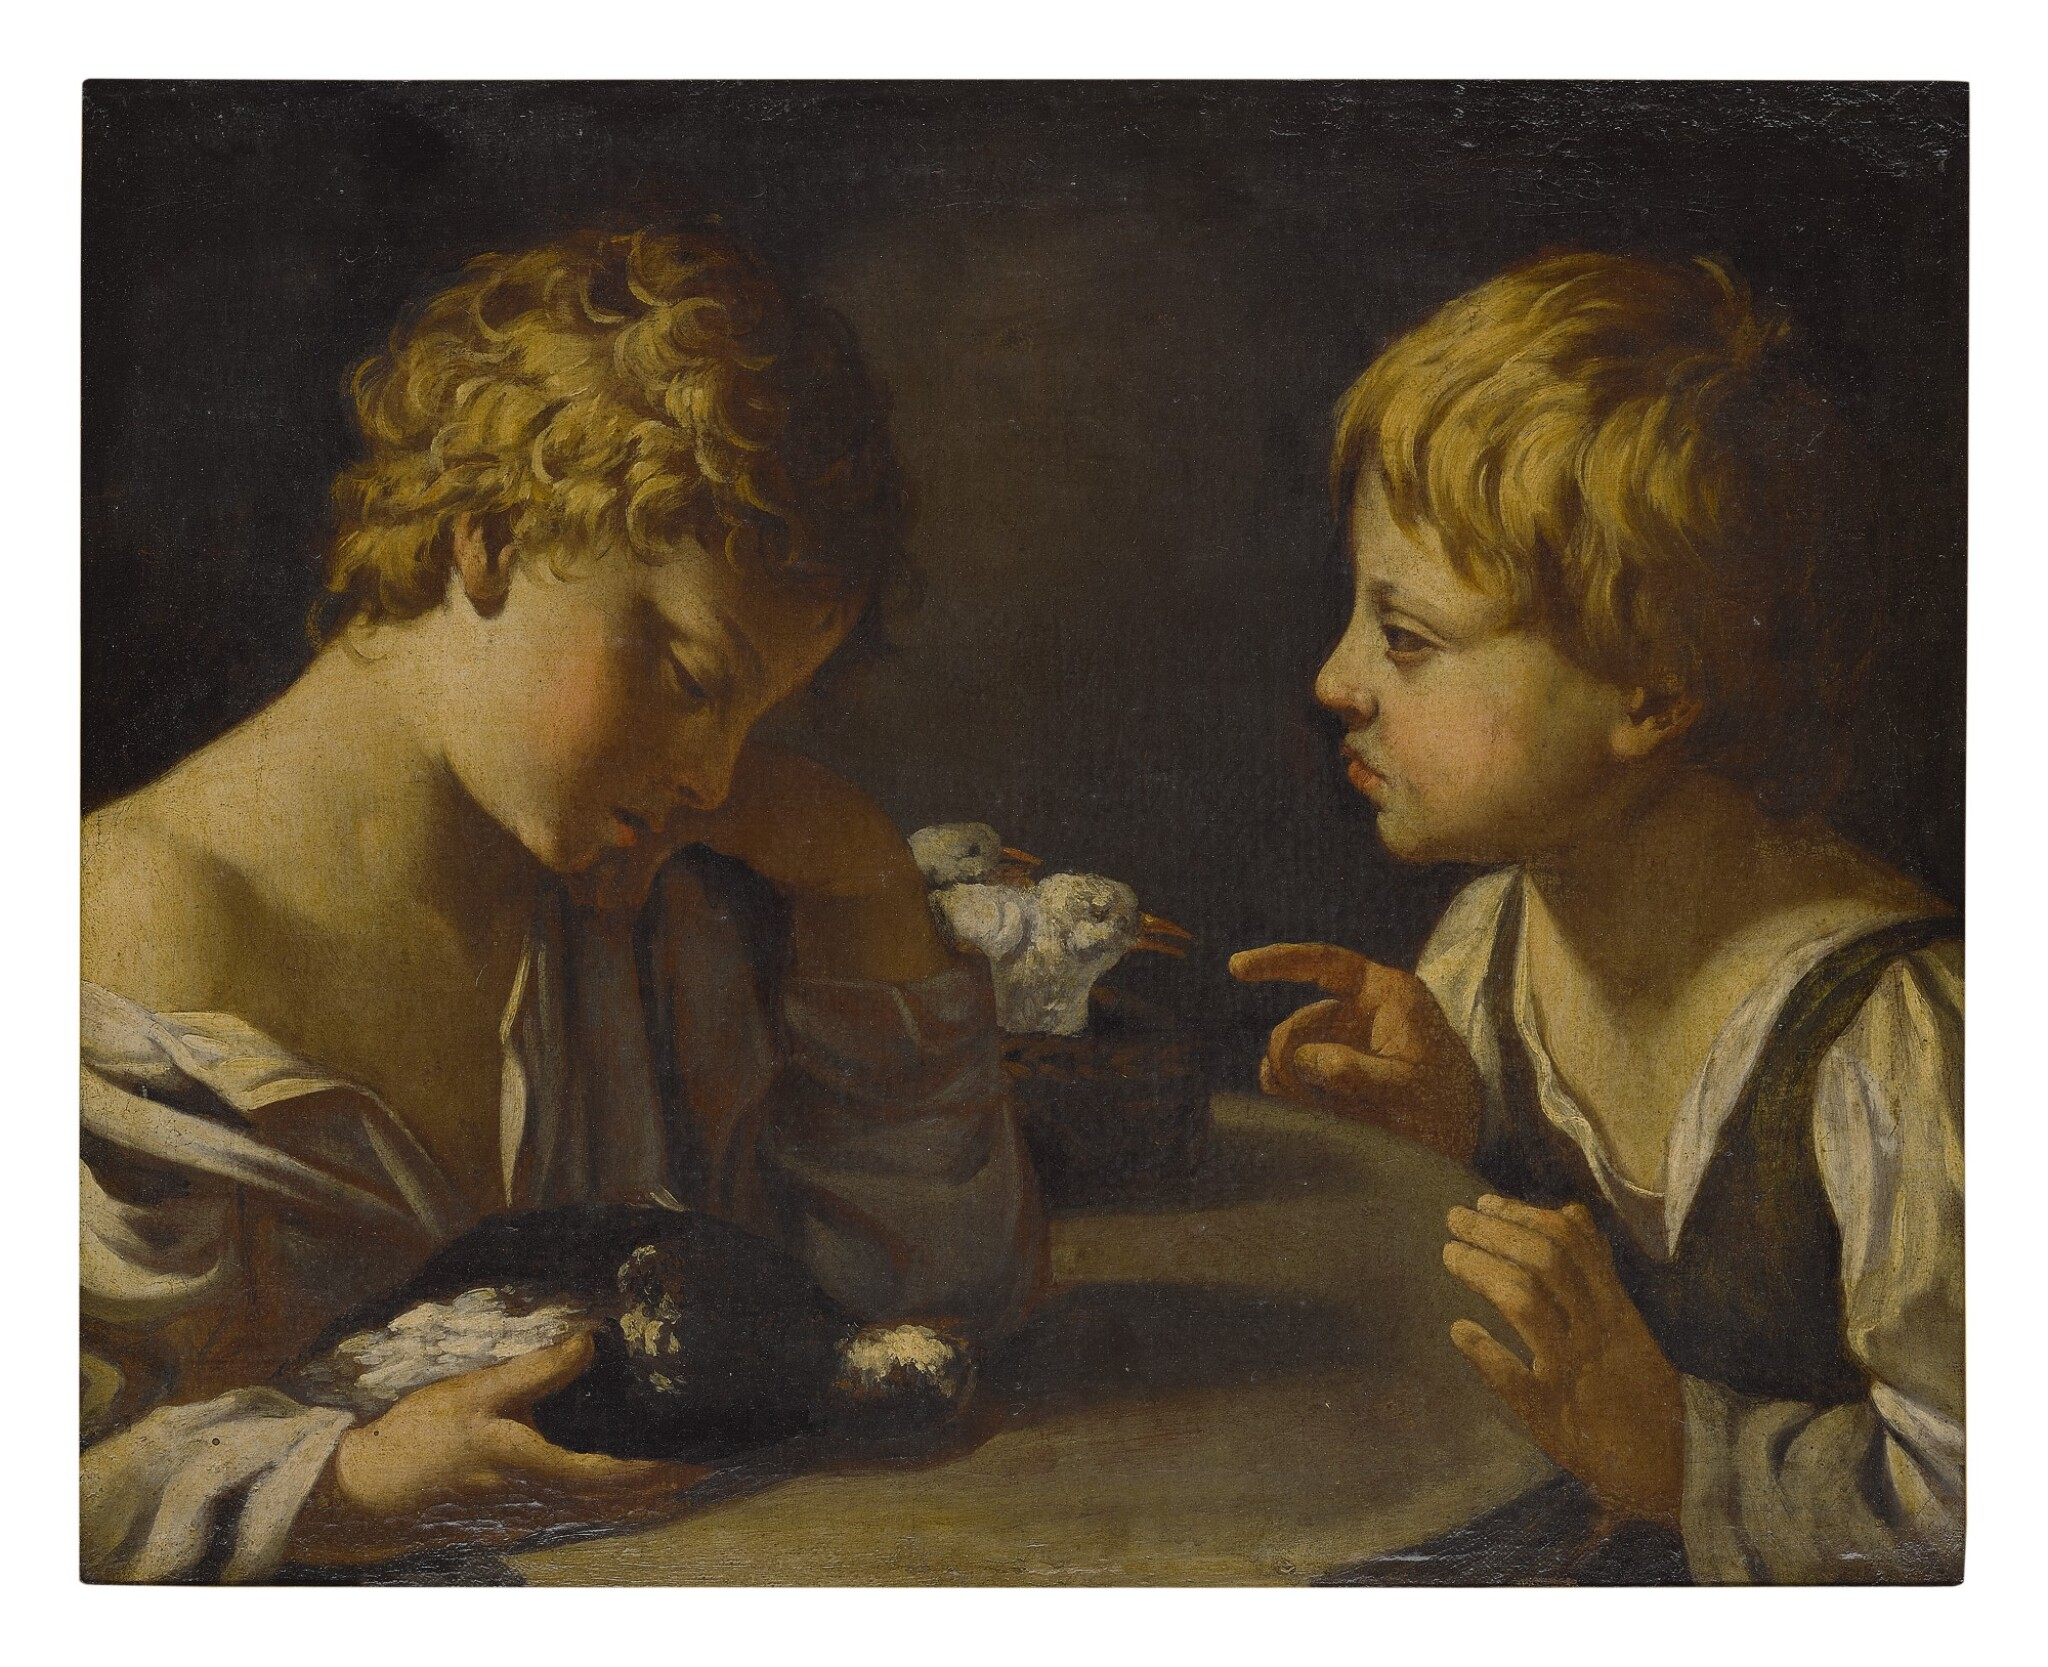 BOLOGNESE SCHOOL, 16TH CENTURY | TWO YOUNG BOYS WITH DOVES